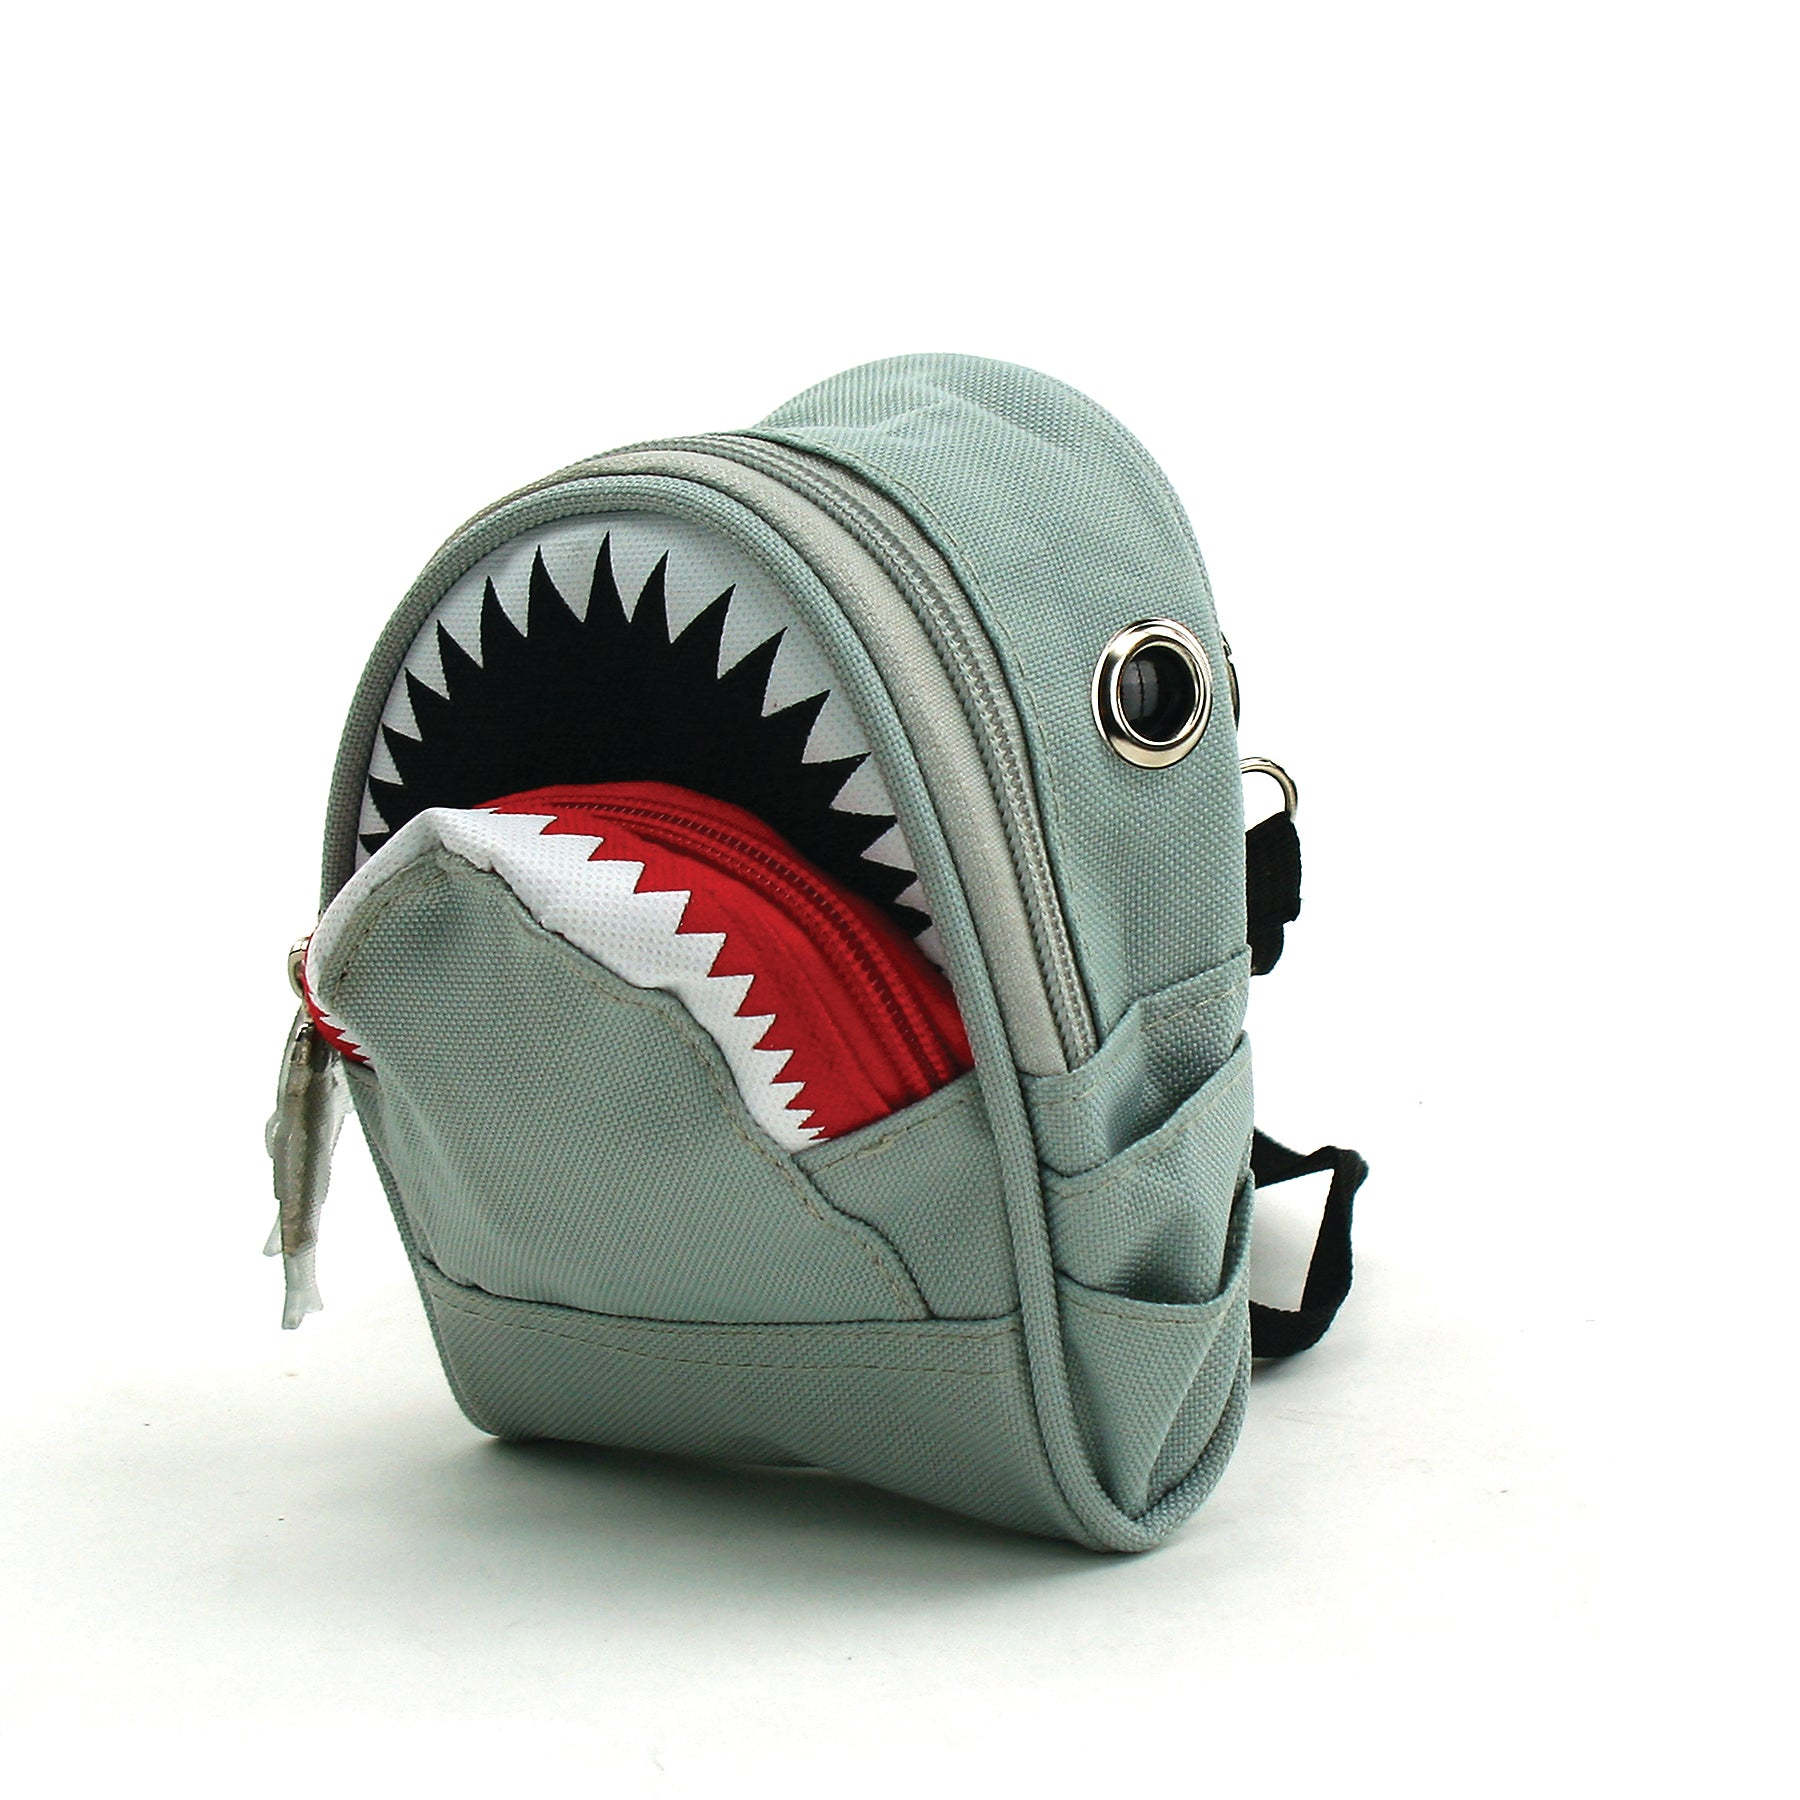 Killer Shark Pouch Crossbody Bag in Nylon side view